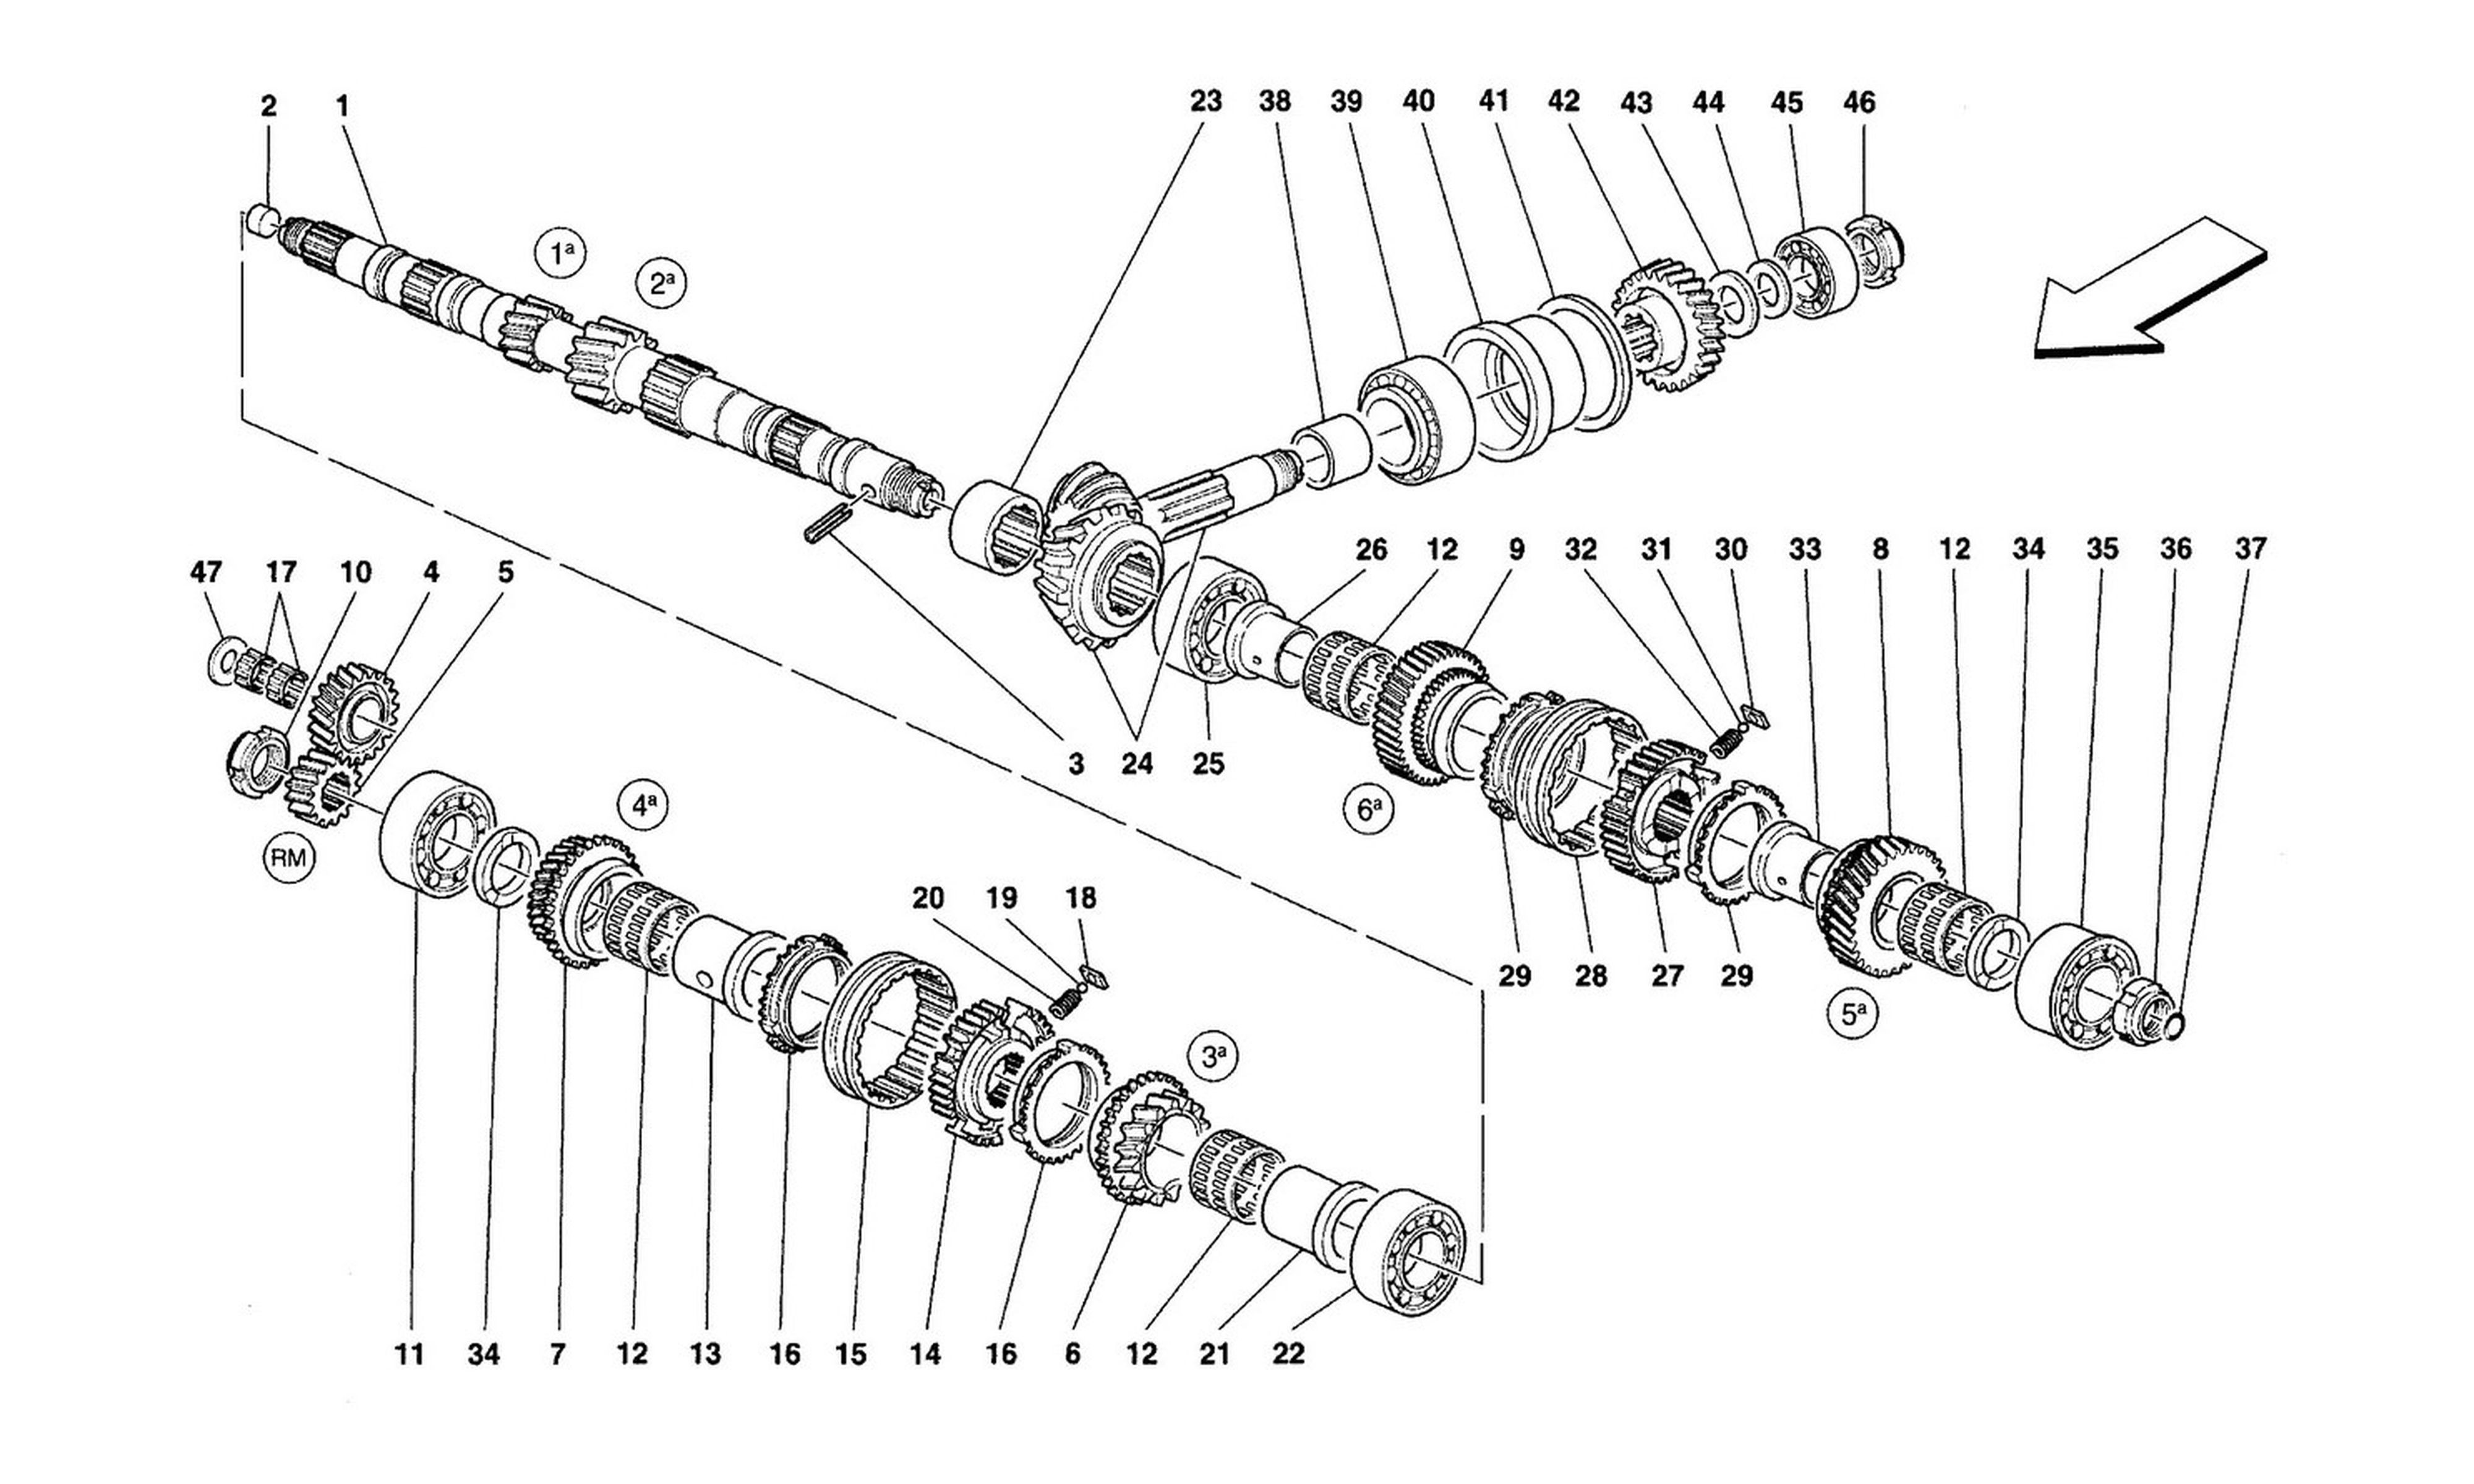 Table 29 - Main Shaft Gears